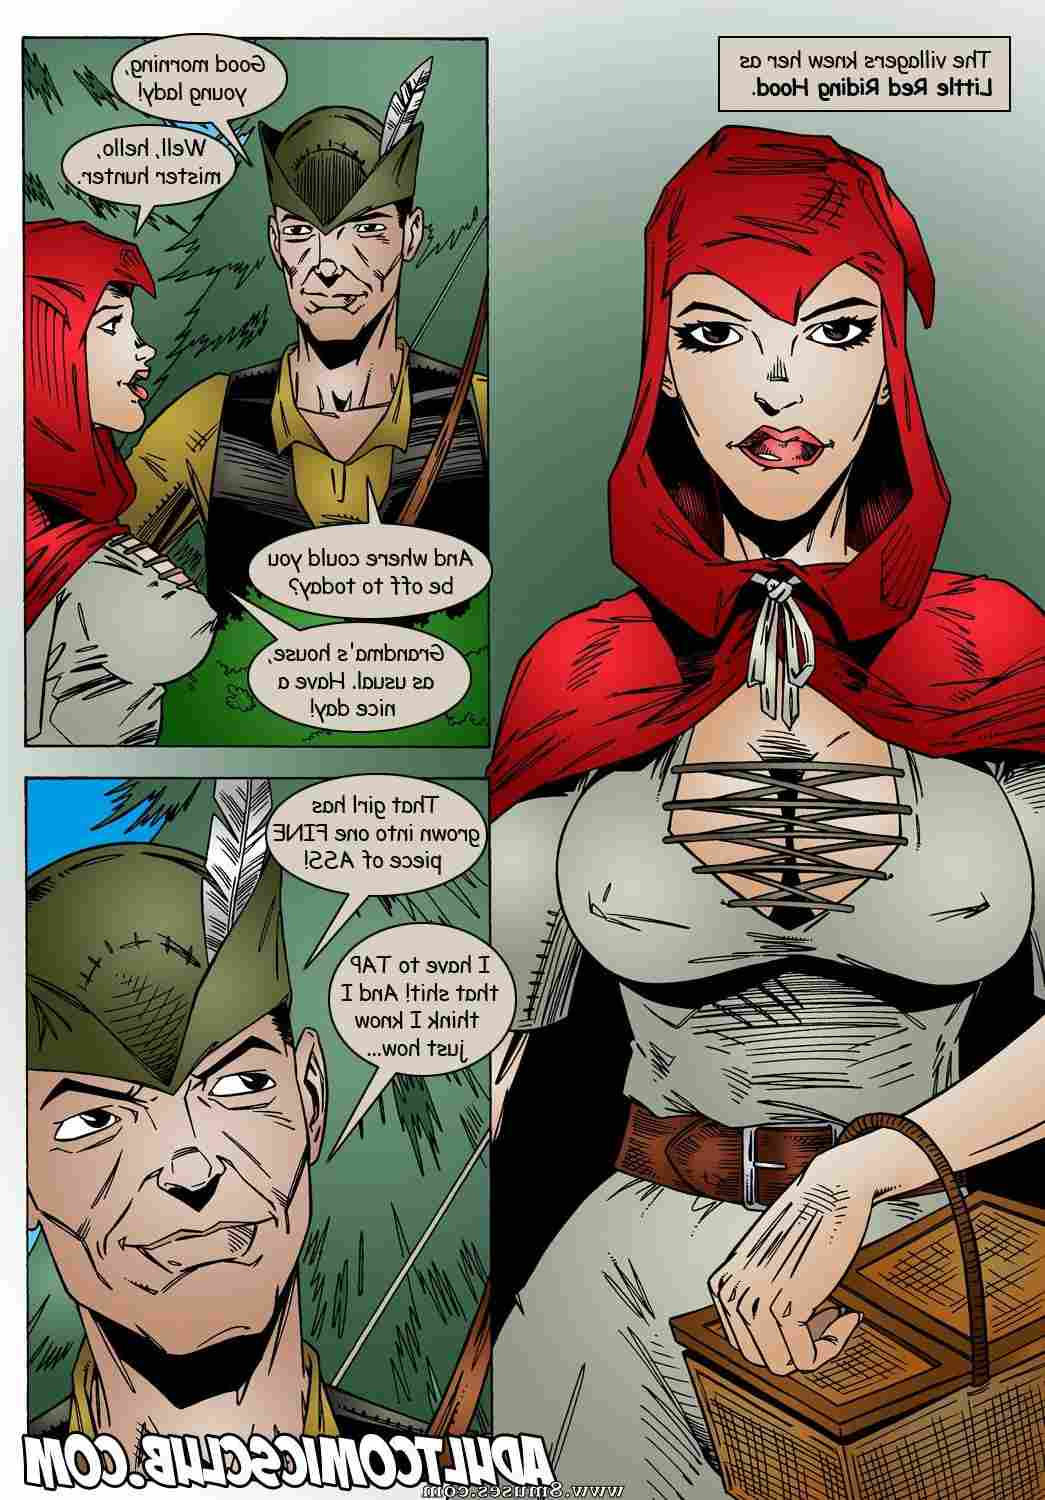 AdultComicsClub_com-Collection/Little-Red-Riding-Hood Little_Red_Riding_Hood__8muses_-_Sex_and_Porn_Comics_2.jpg